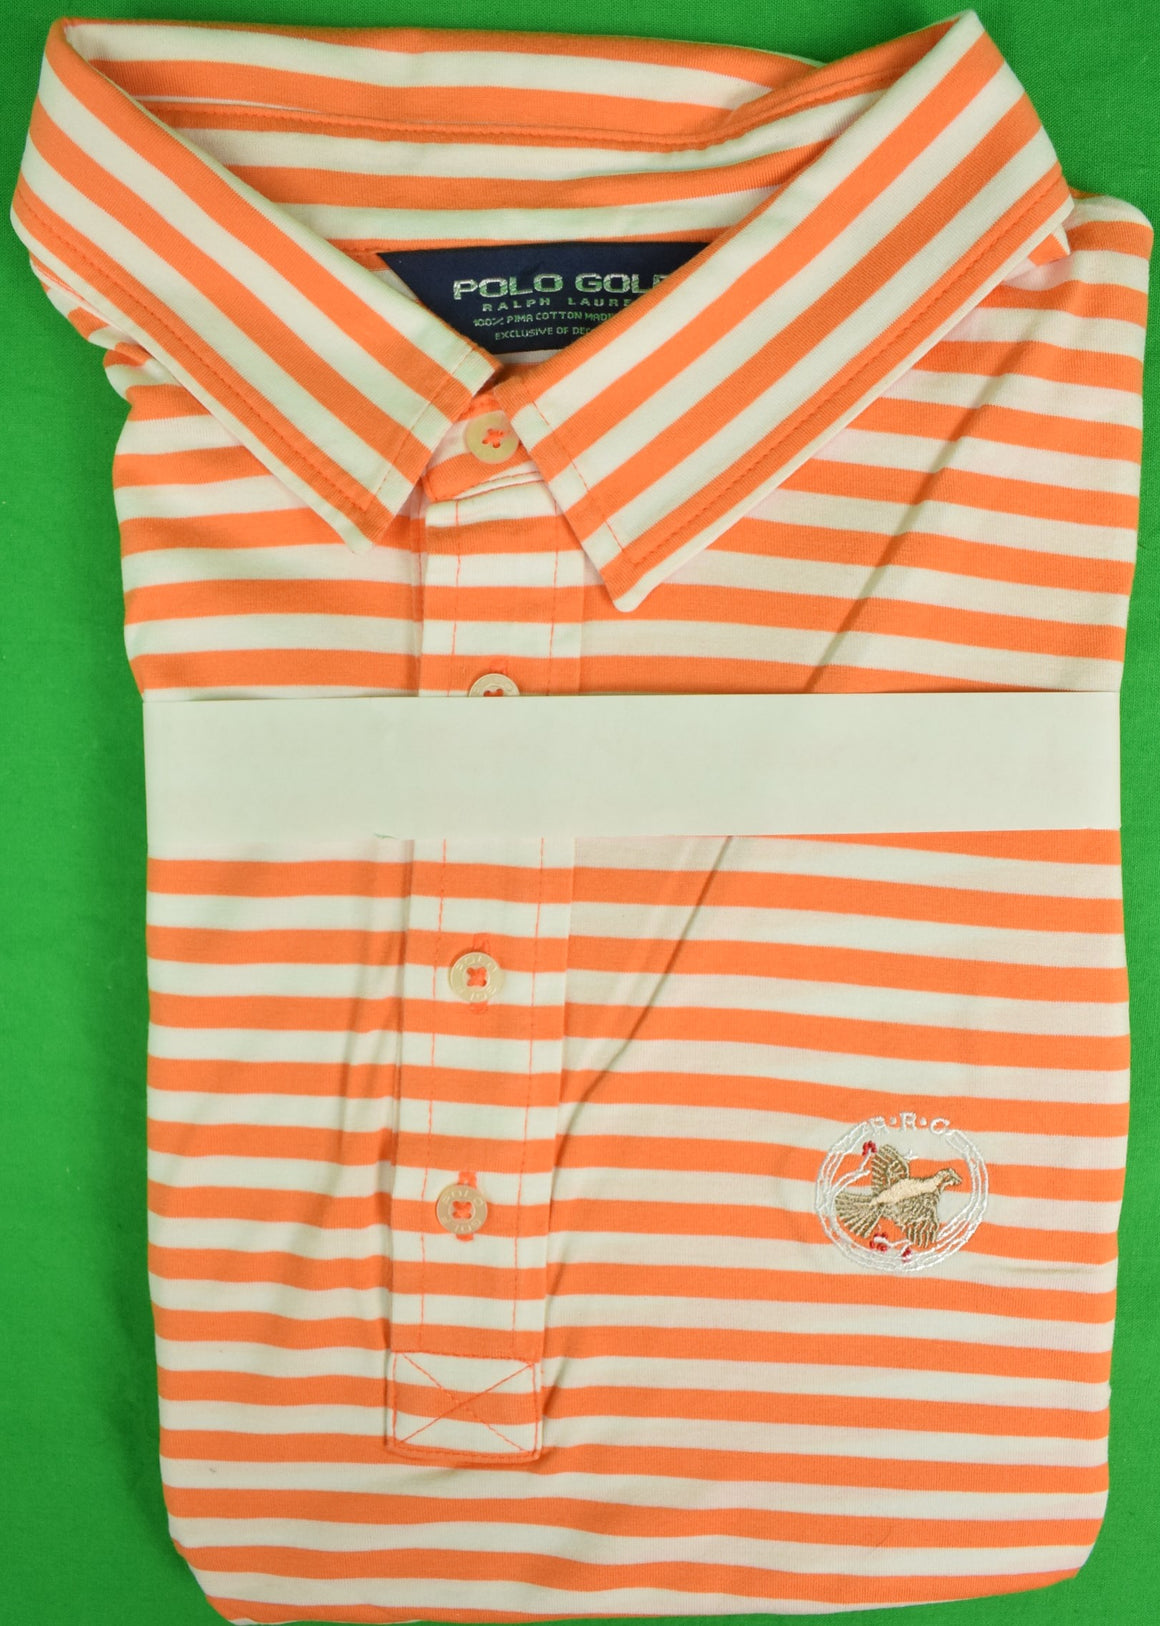 Ralph Lauren Polo Golf Orange/ White Stripe Sport Shirt w/ Rolling Rock Club Logo Sz: XXL